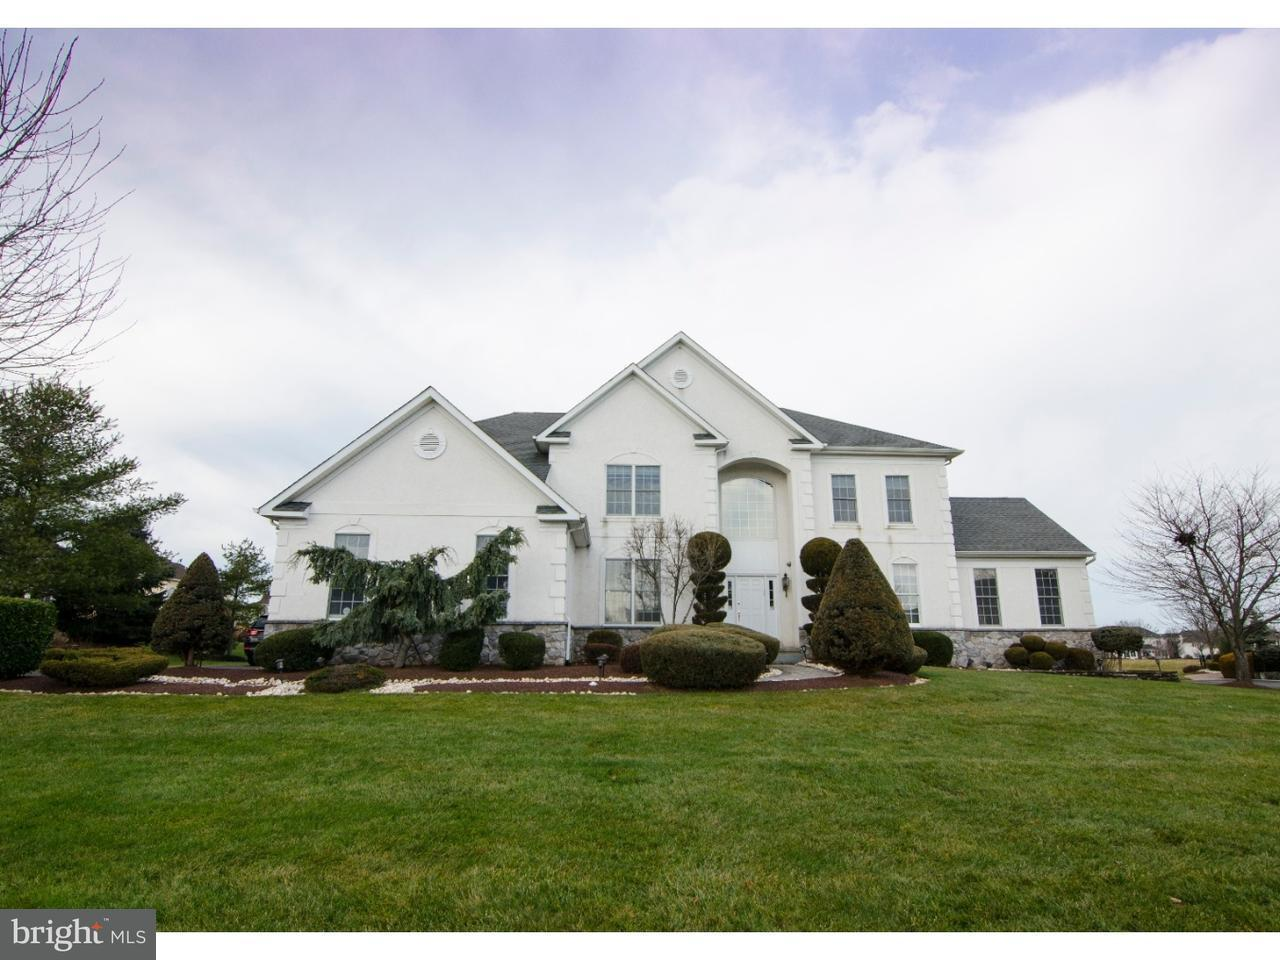 Single Family Home for Sale at 64 LIVERY Drive Northampton, Pennsylvania 18966 United States